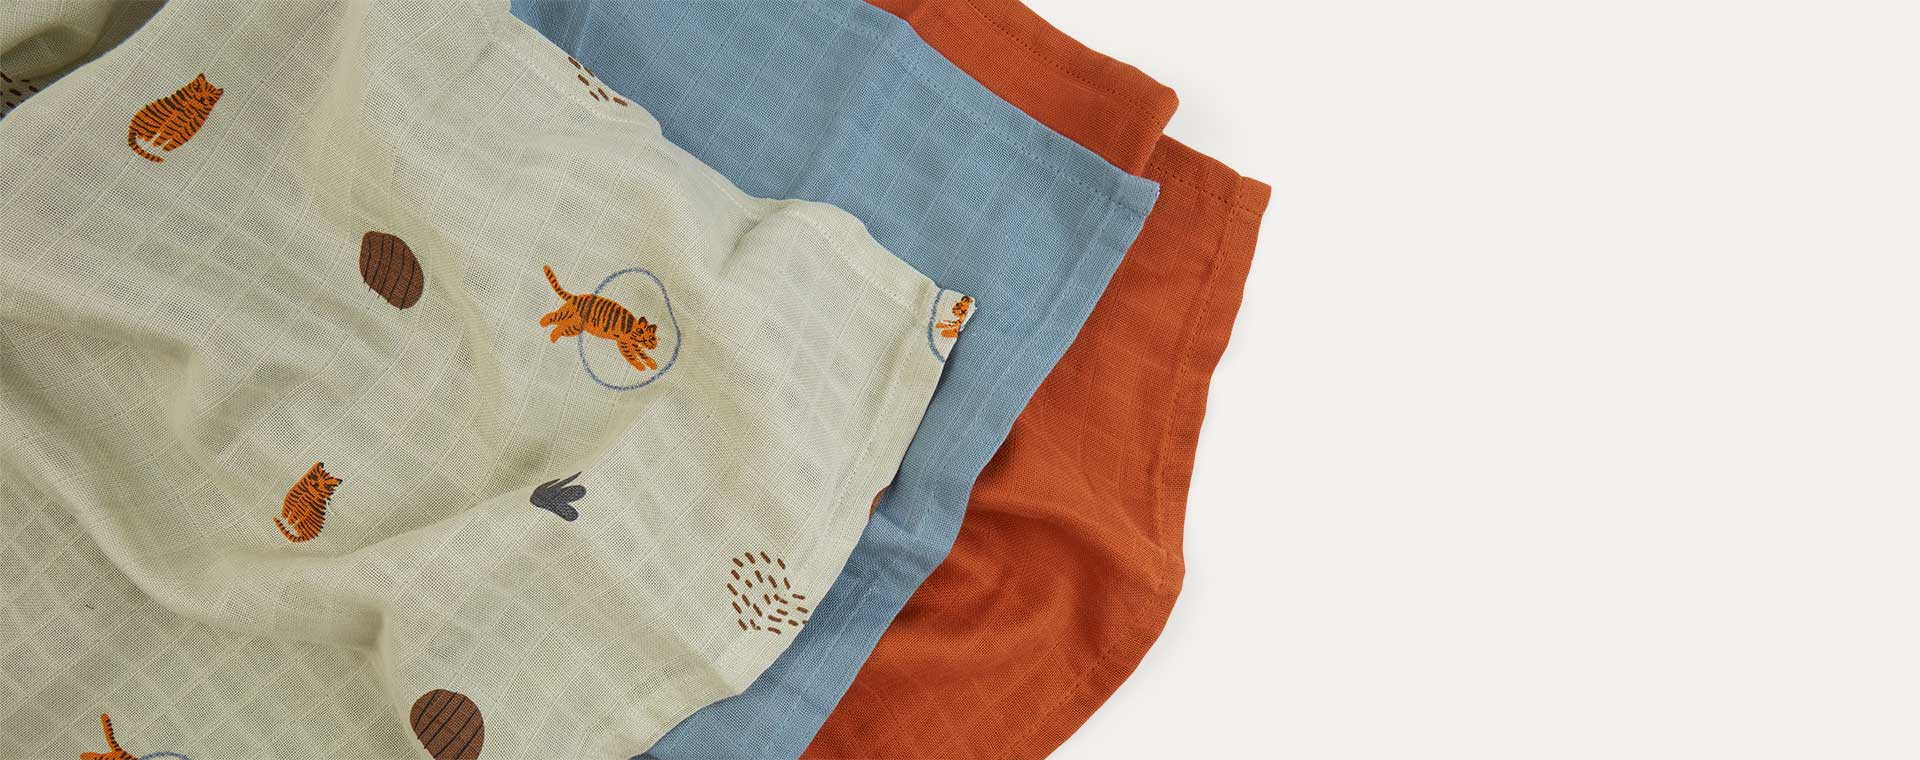 Tiger OYOY Muslin Square 3 Pack